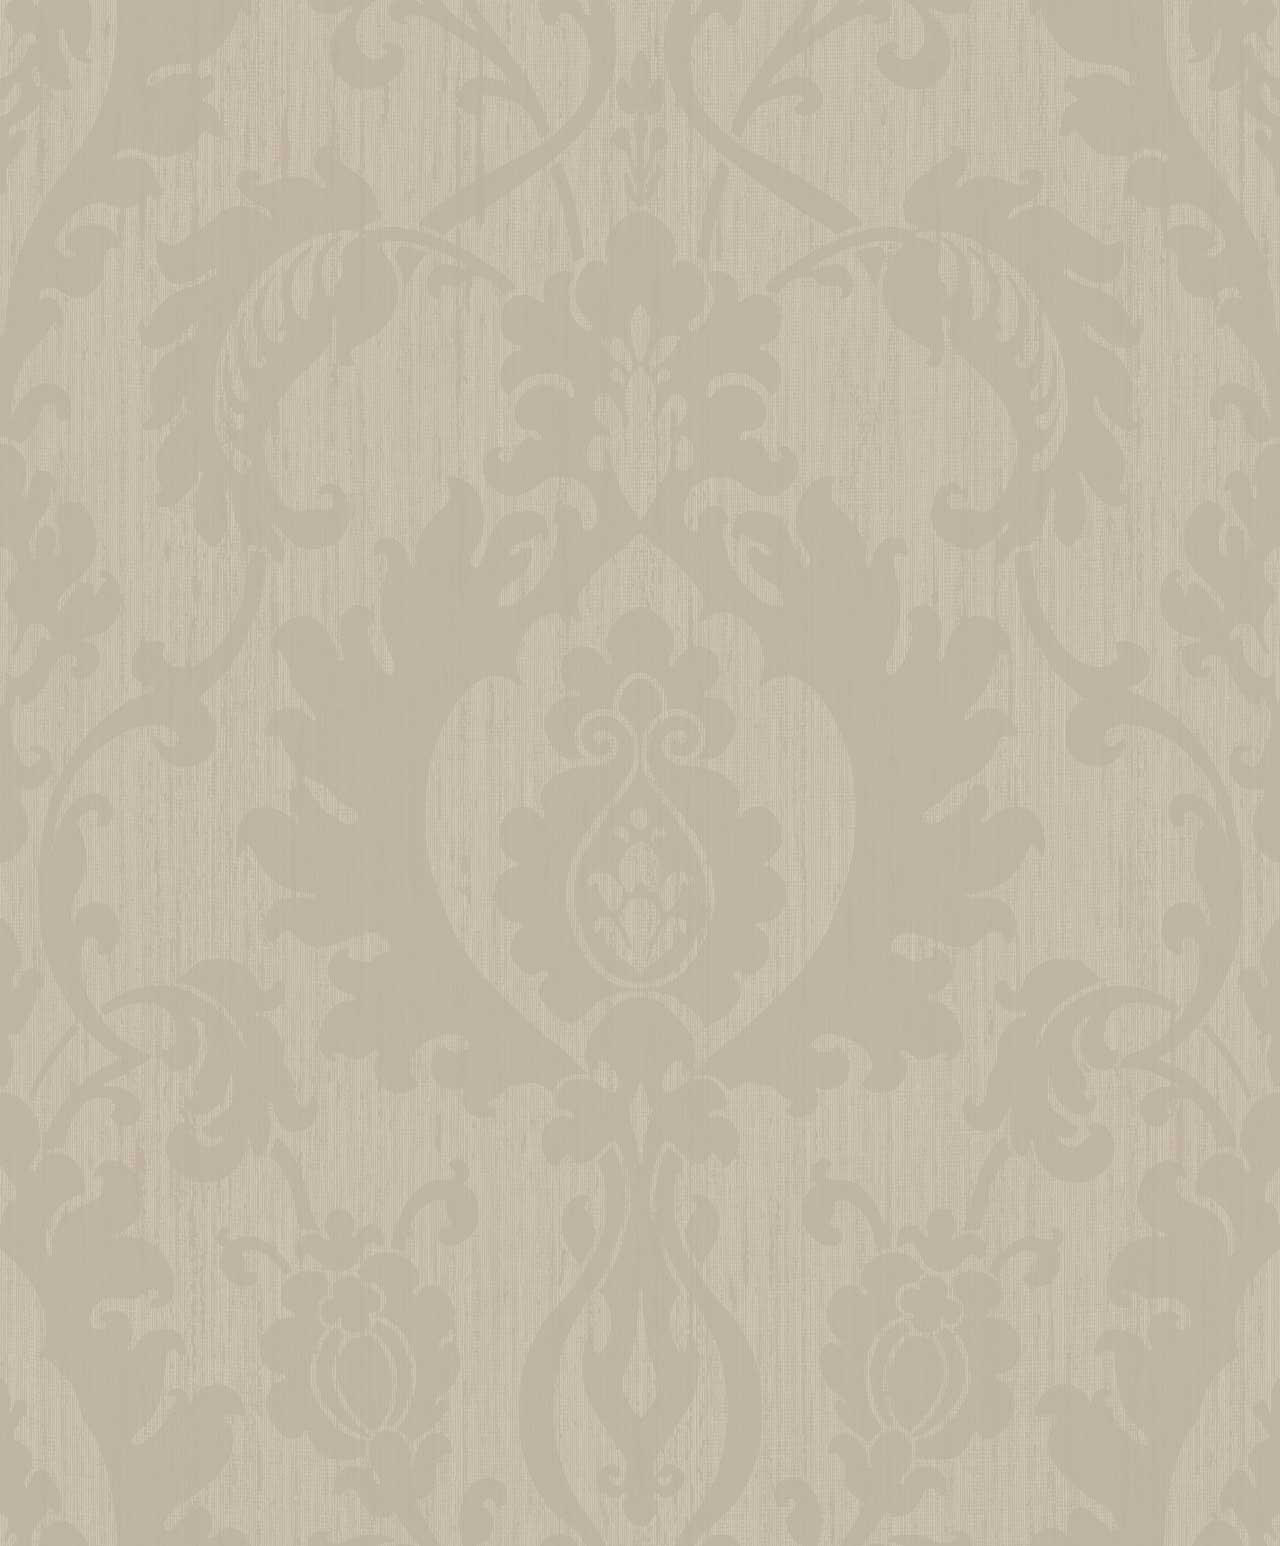 Sloan-Luxury-Wallpaper-SL00828-BOLD-DAMASK-BEADS